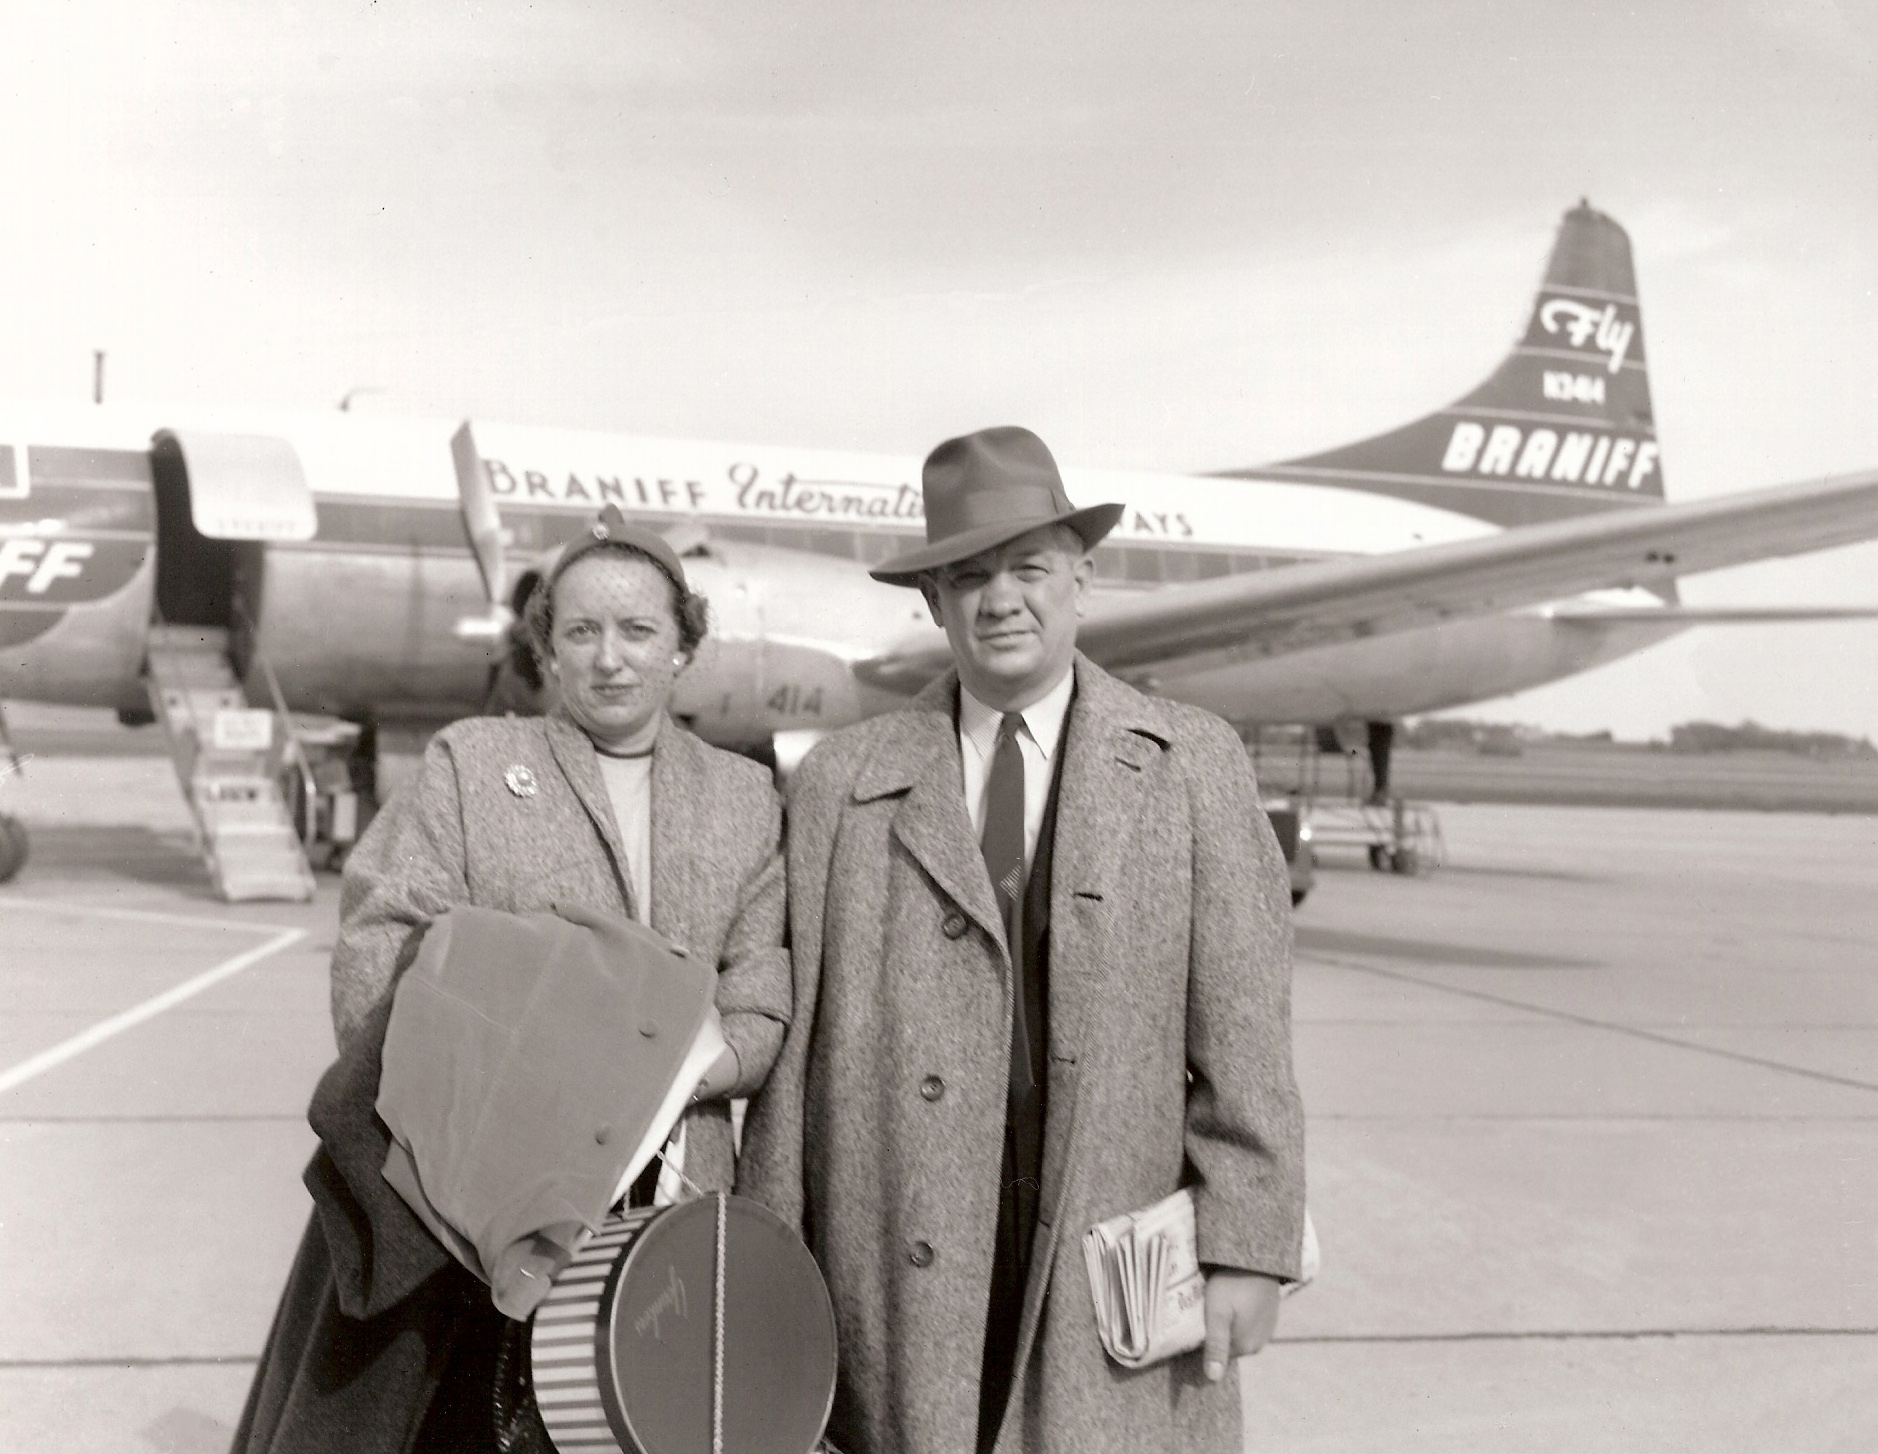 Mr. & Mrs. George M. Strayer leaving Waterloo, Iowa, enroute to Japan in October 1955. Strayer, a farmer-seedsman living in Hudson, Iowa, was ASA's first executive officer and served as the Executive Vice President and Secretary-Treasurer of the Association from November 1940 through April 30, 1967. (American Soybean Association archive photo)